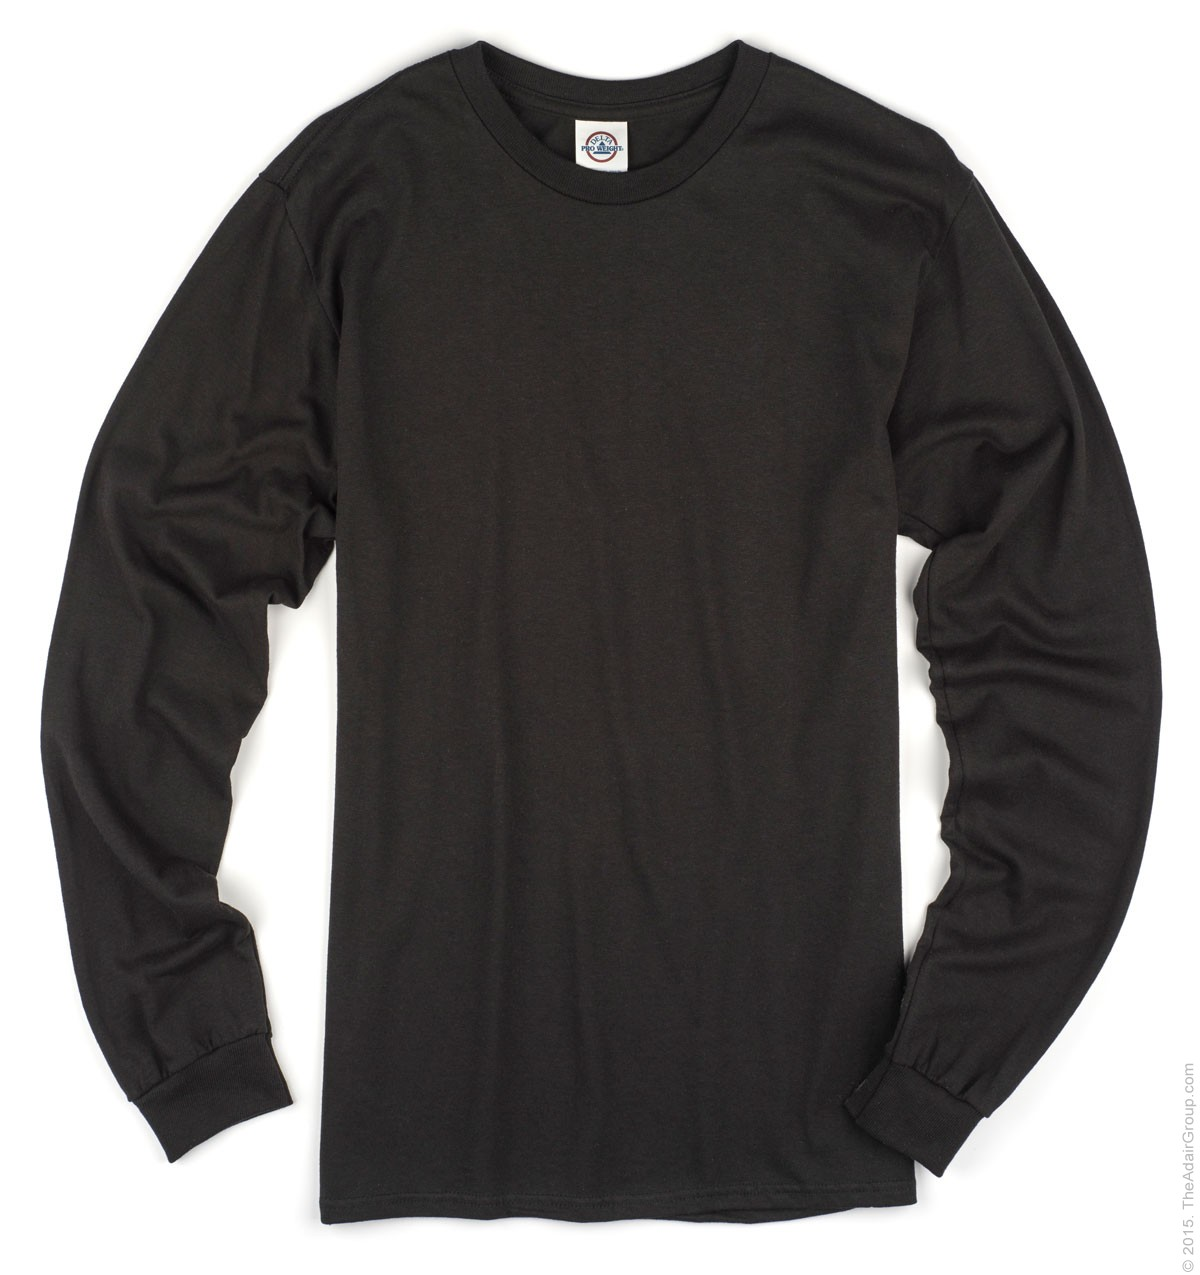 Black Plain T-Shirts from Quality Brands